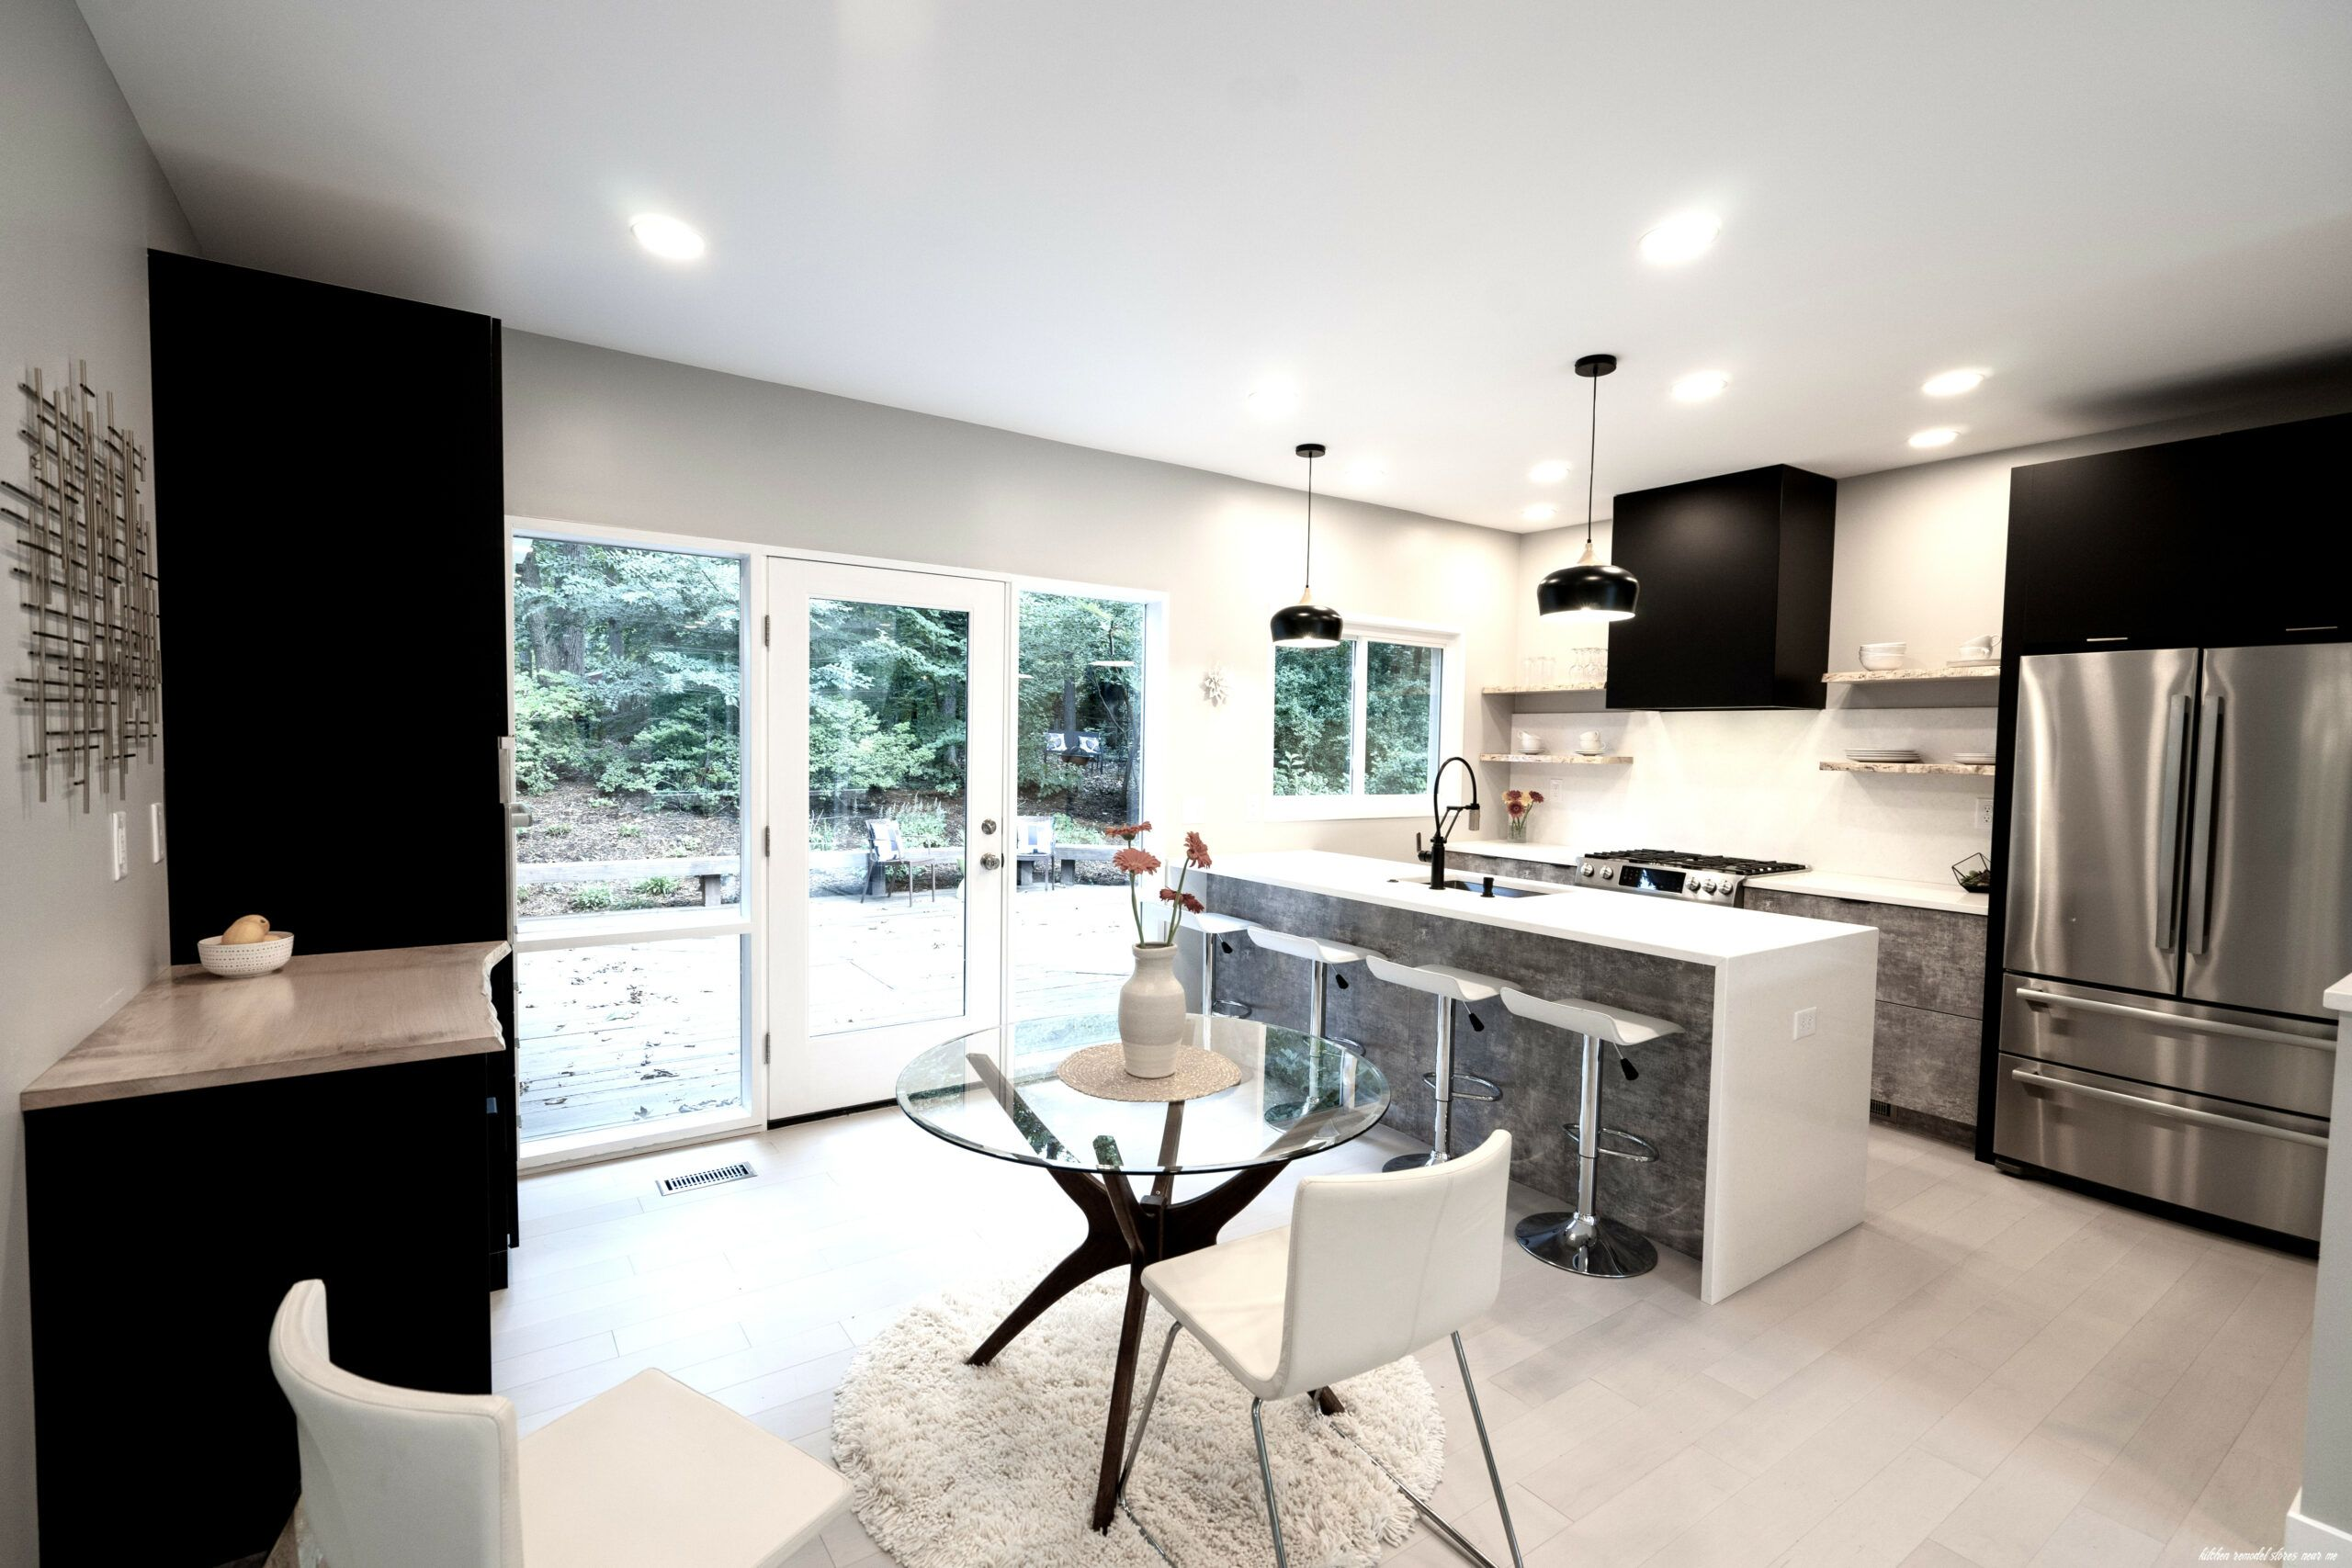 Kitchen Remodel Stores Near Me in 2020 | Country kitchen ...